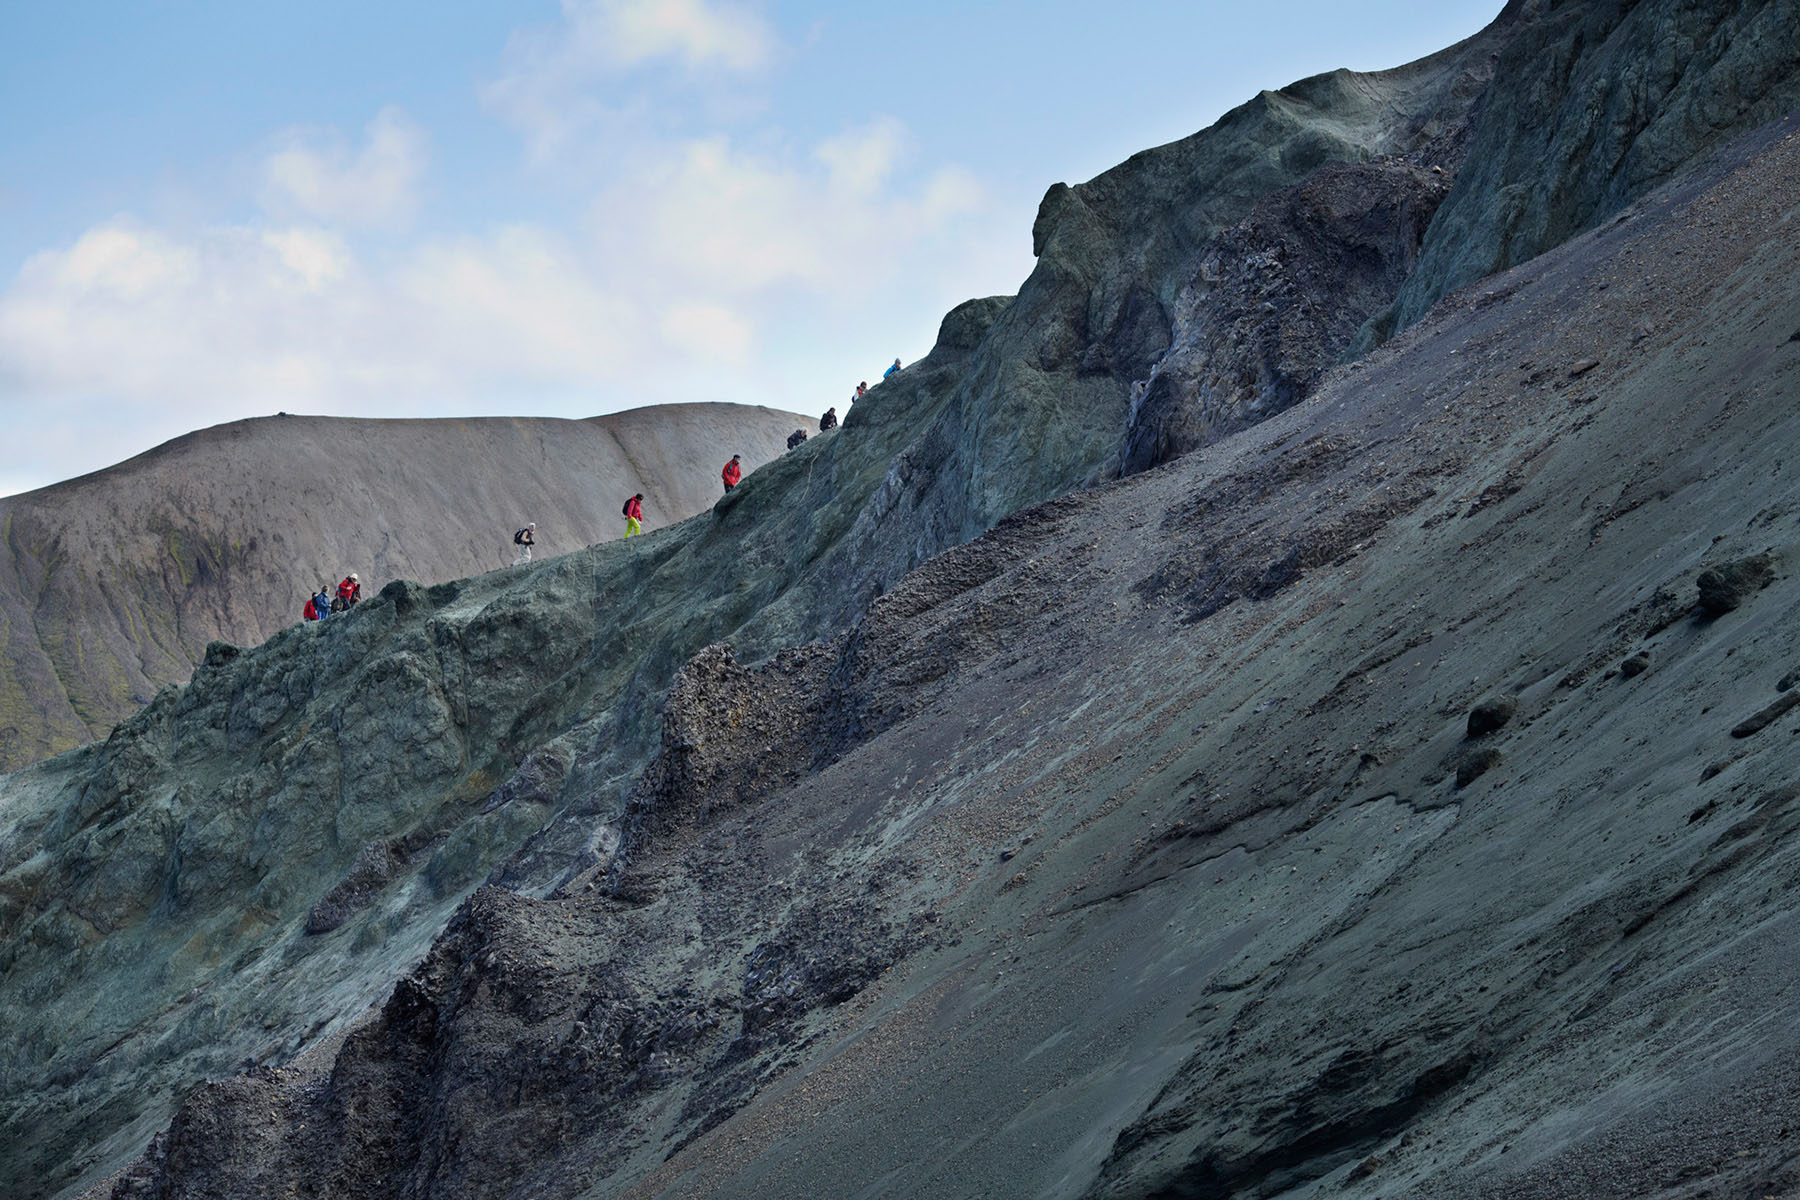 Hikers walking up on ledge of mountain